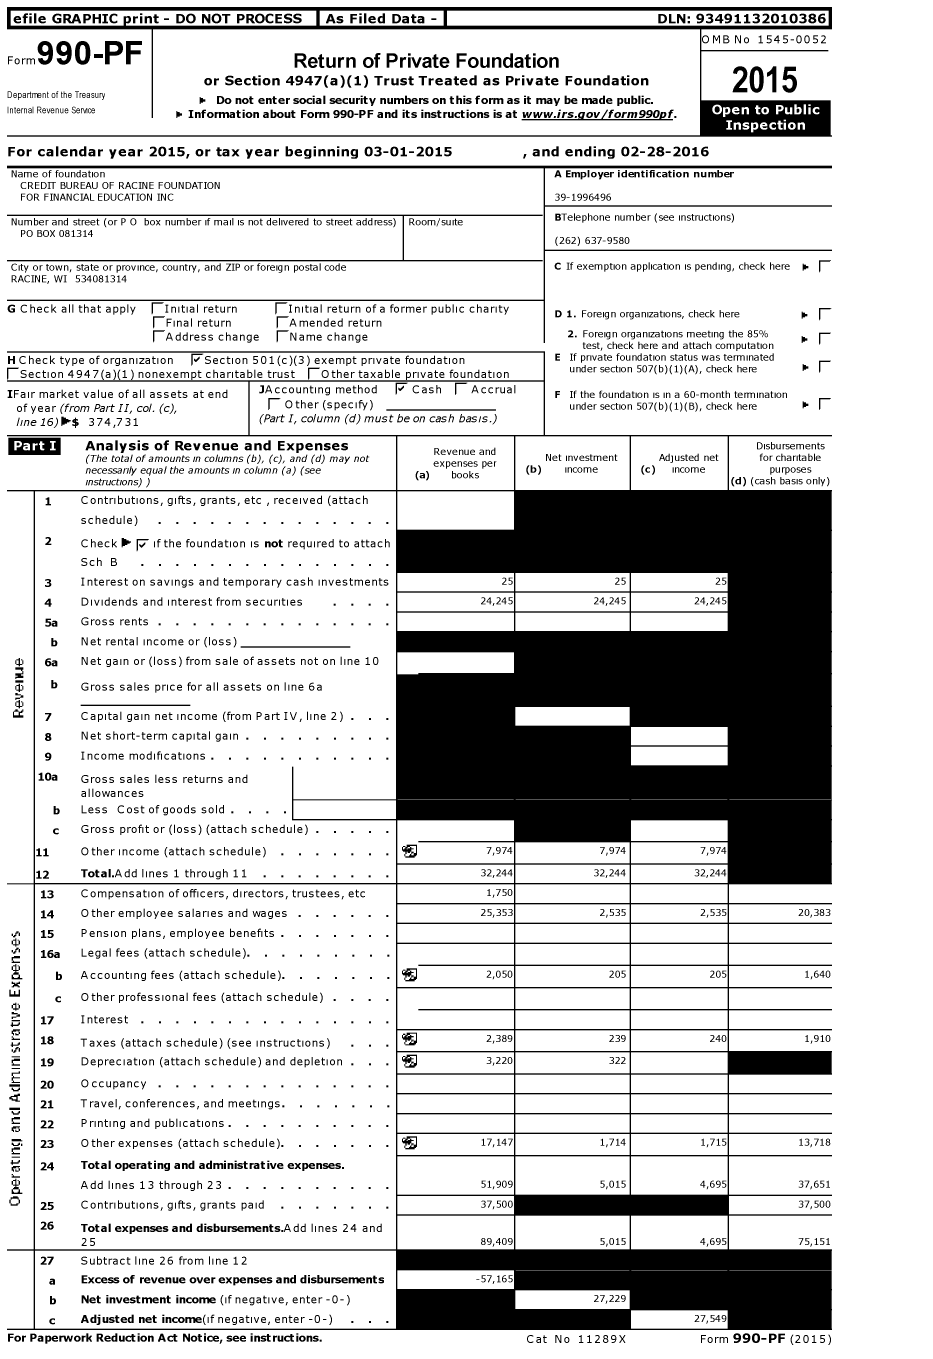 Image of first page of 2015 Form 990PF for Credit Bureau of Racine Foundation for Financial Education